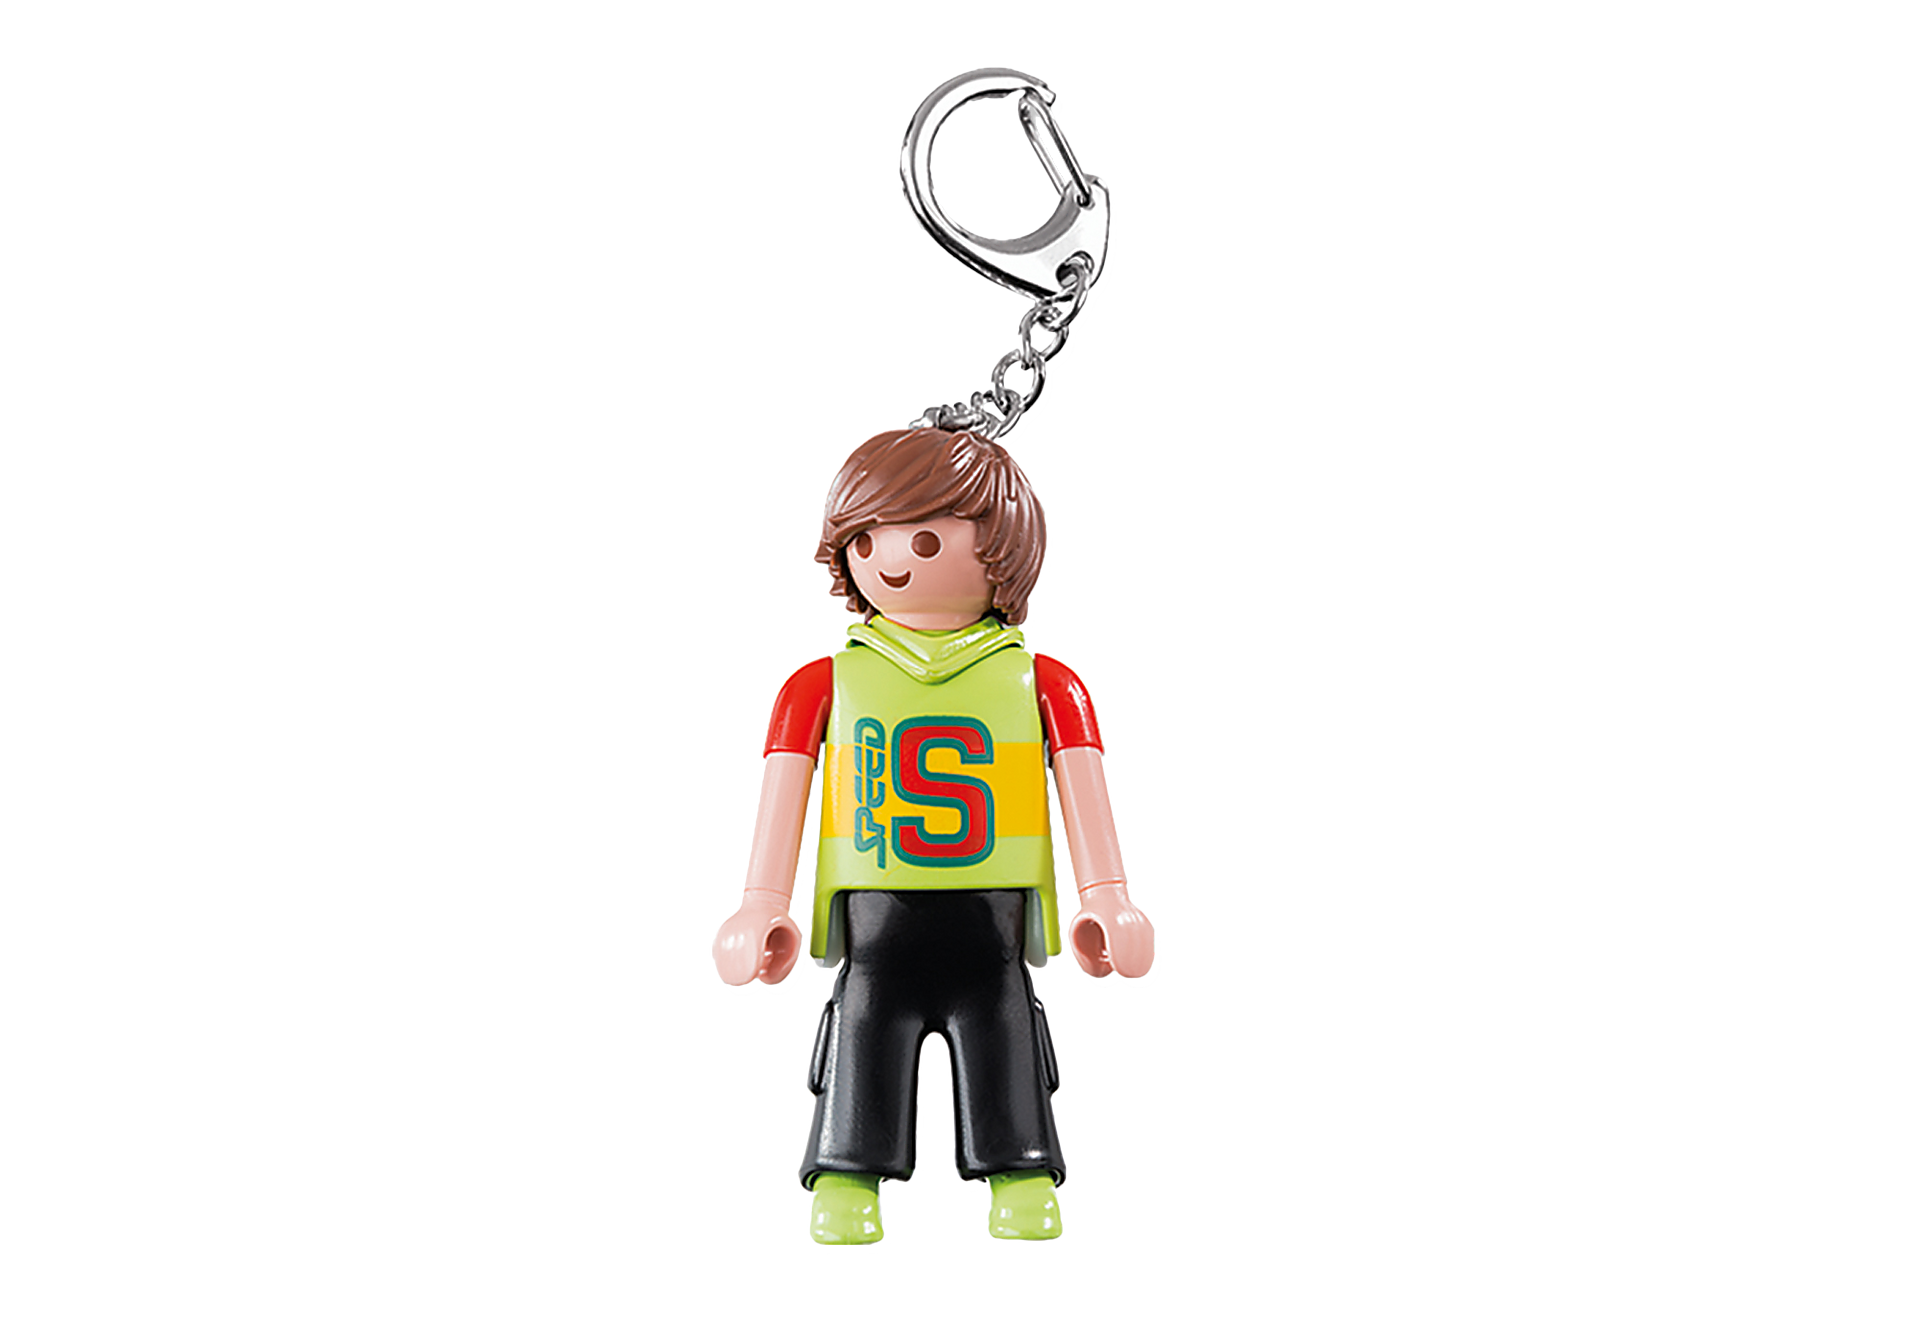 http://media.playmobil.com/i/playmobil/6613_product_detail/Schlüsselanhänger Teenager